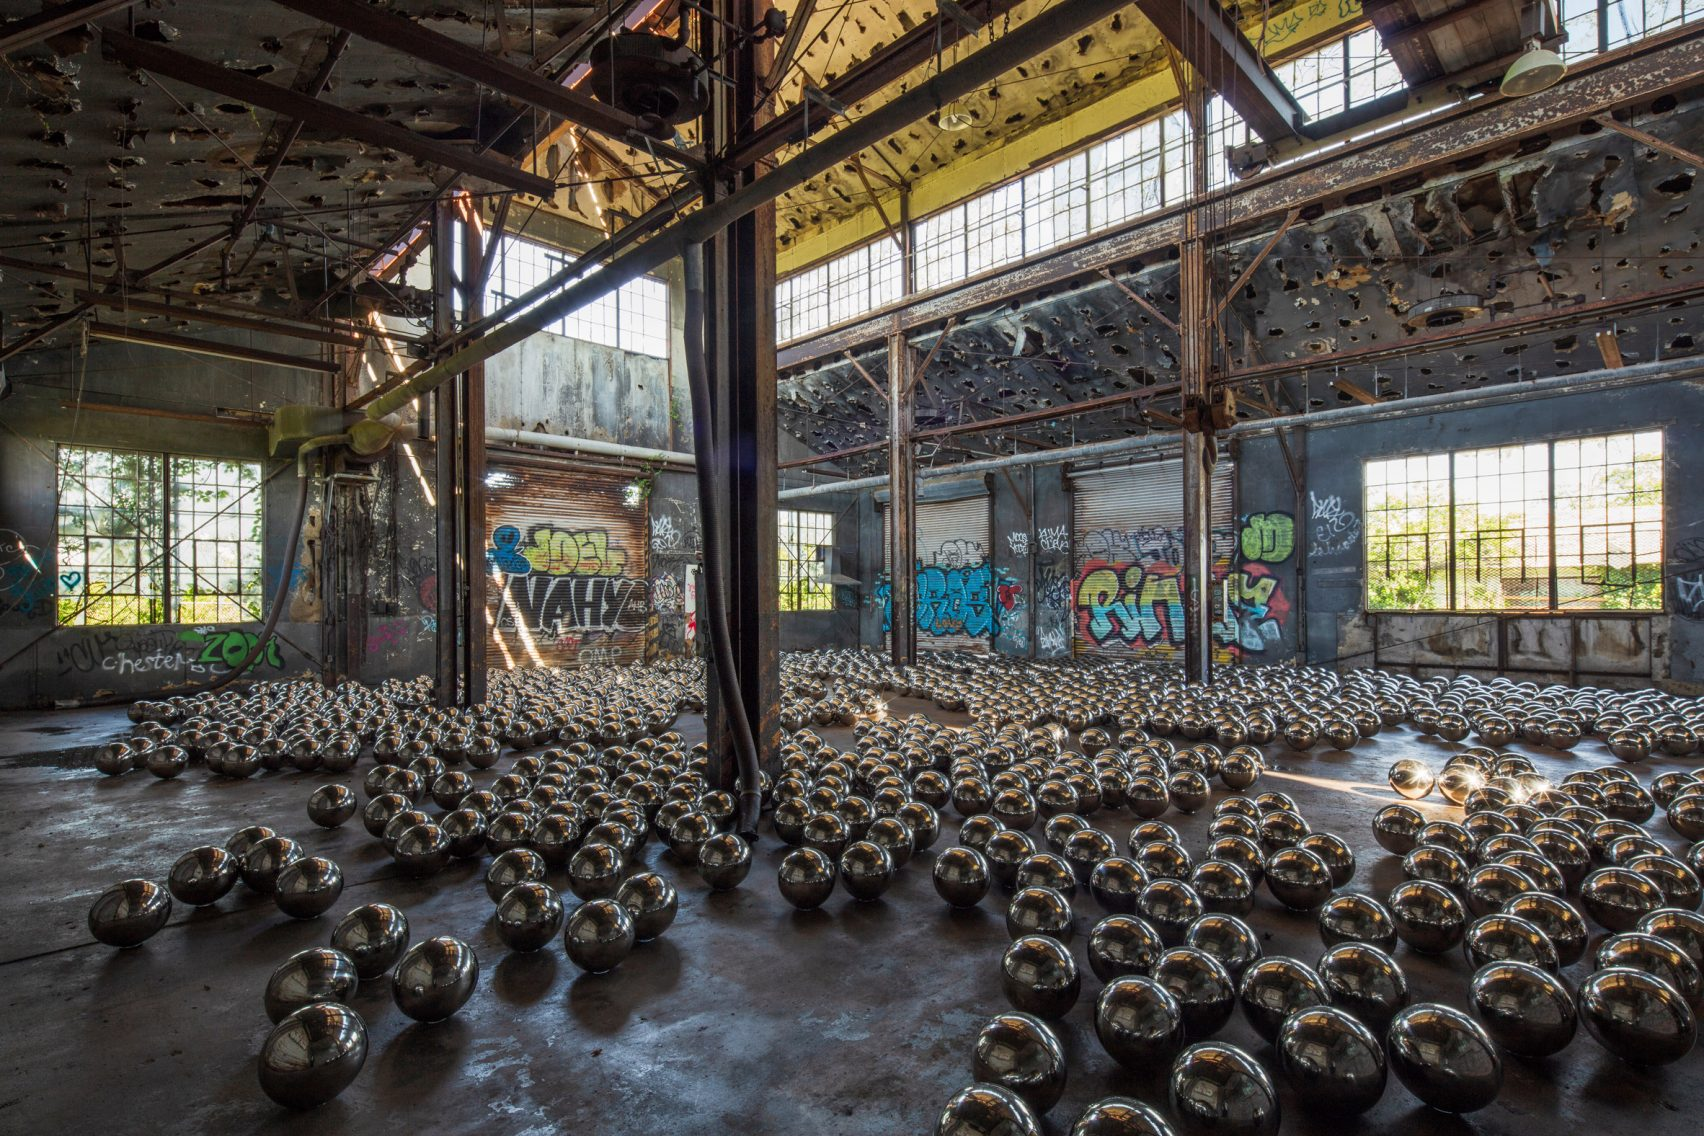 Garage Art Facebook Check Out Artist Yayoi Kusama S Installation In An Abandoned